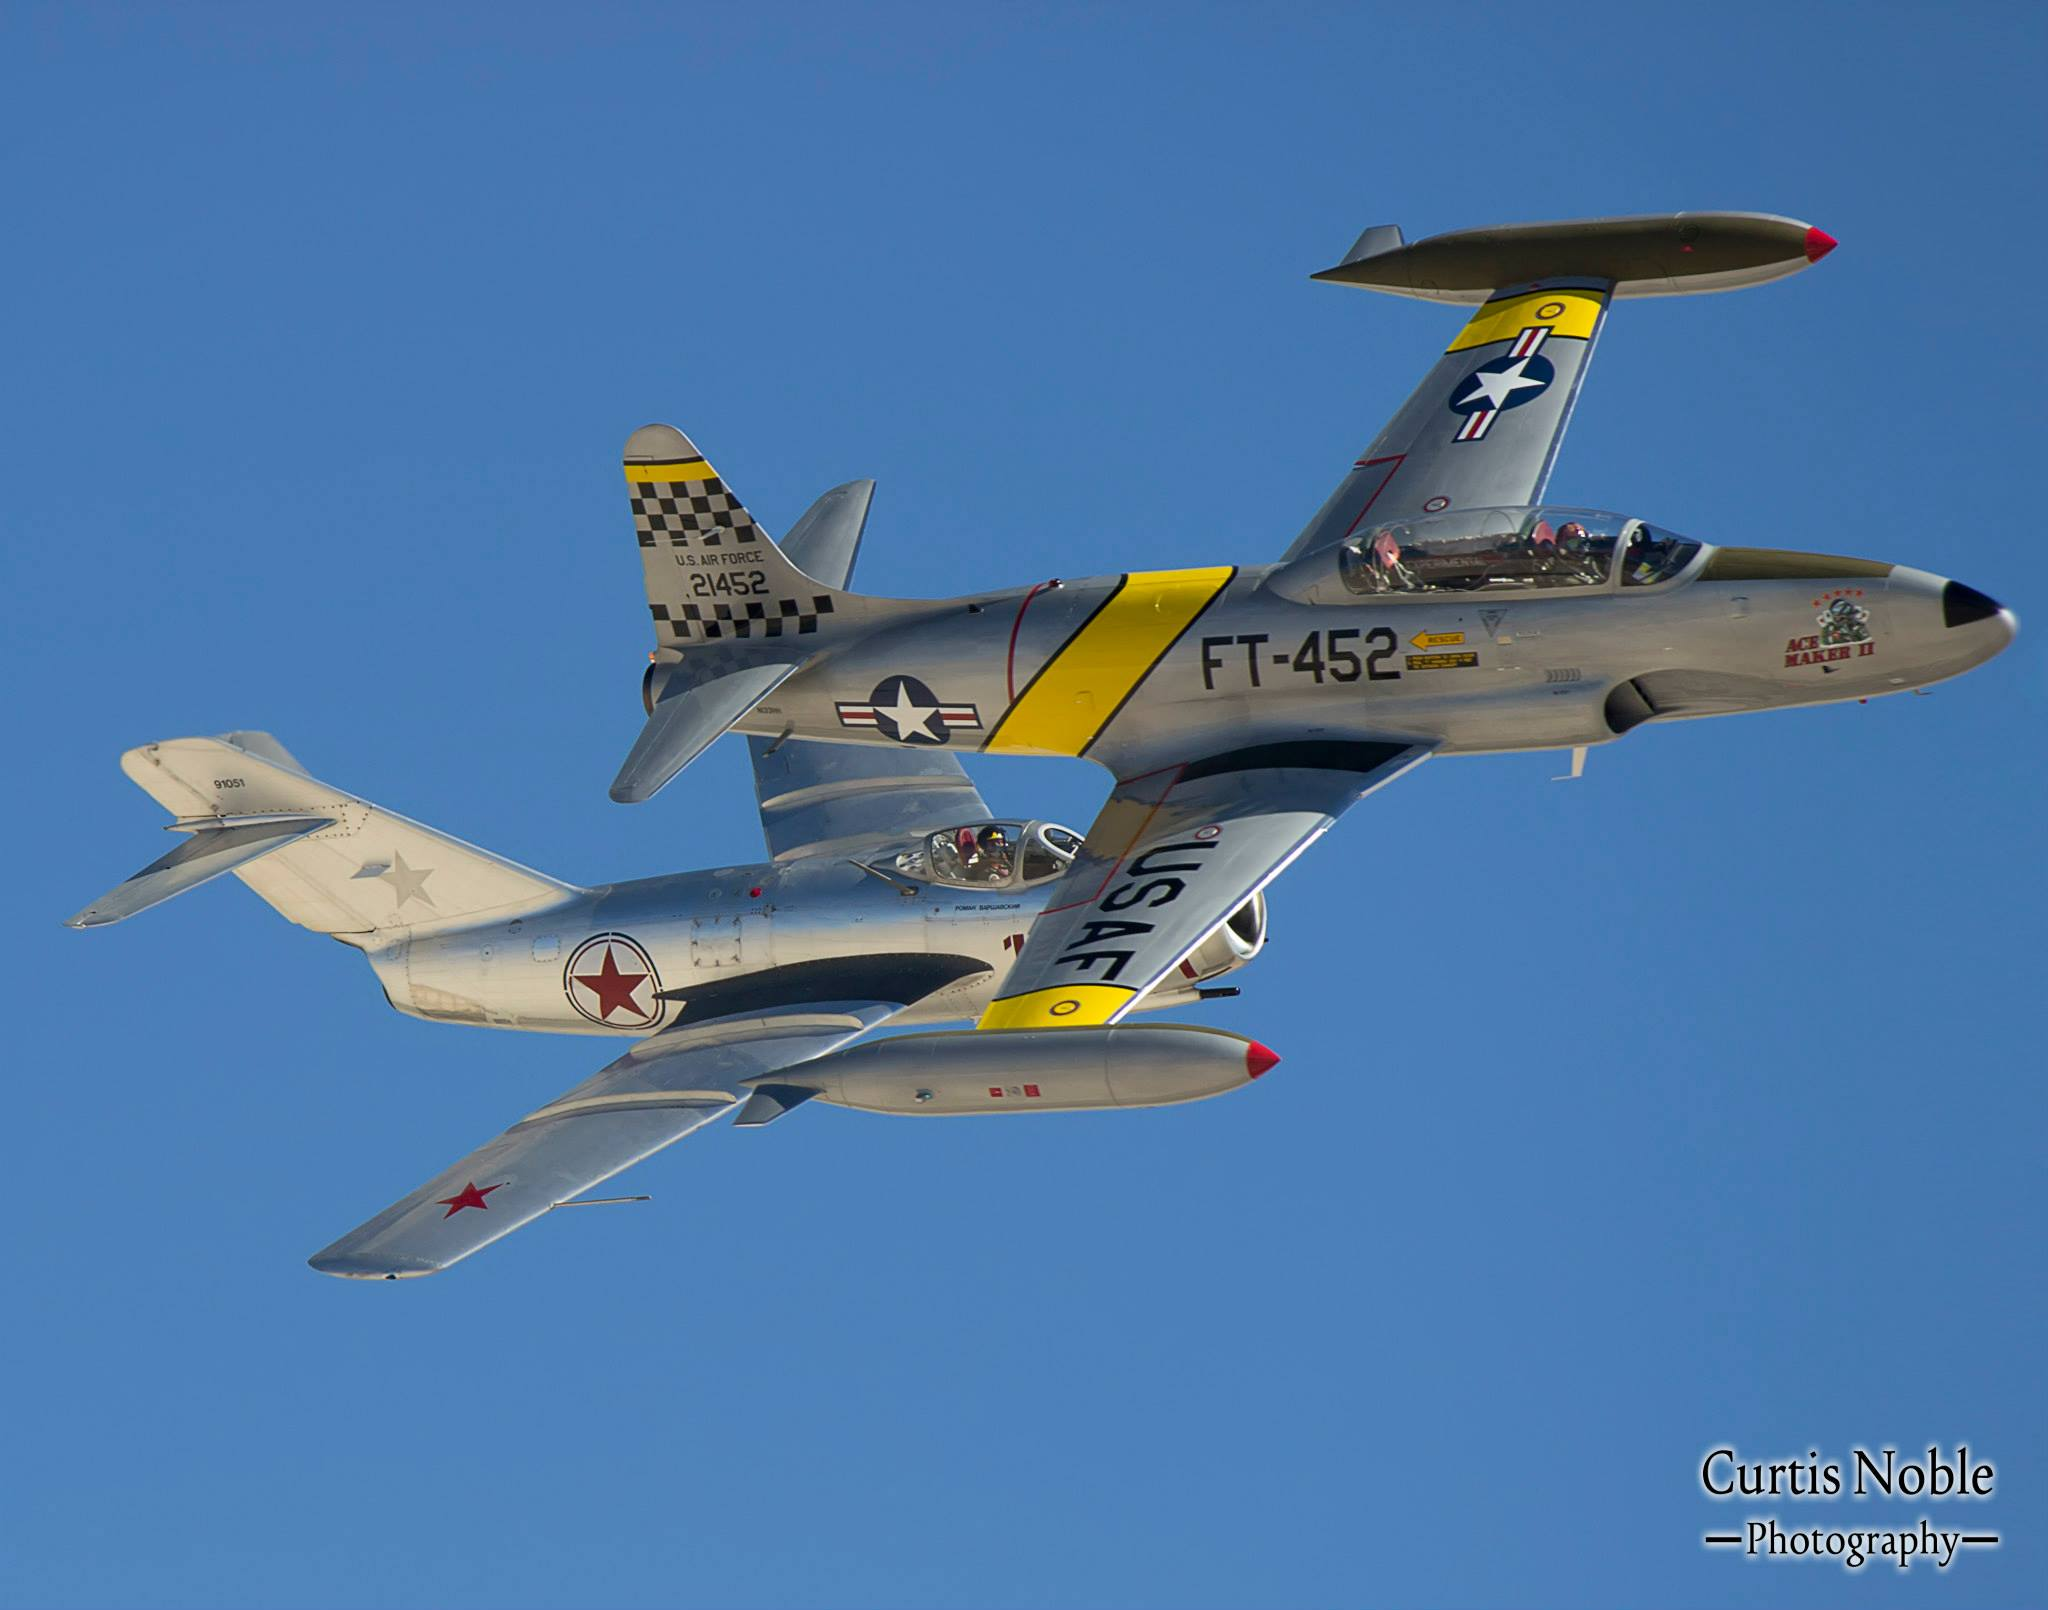 CurtisNobleMiG15T33